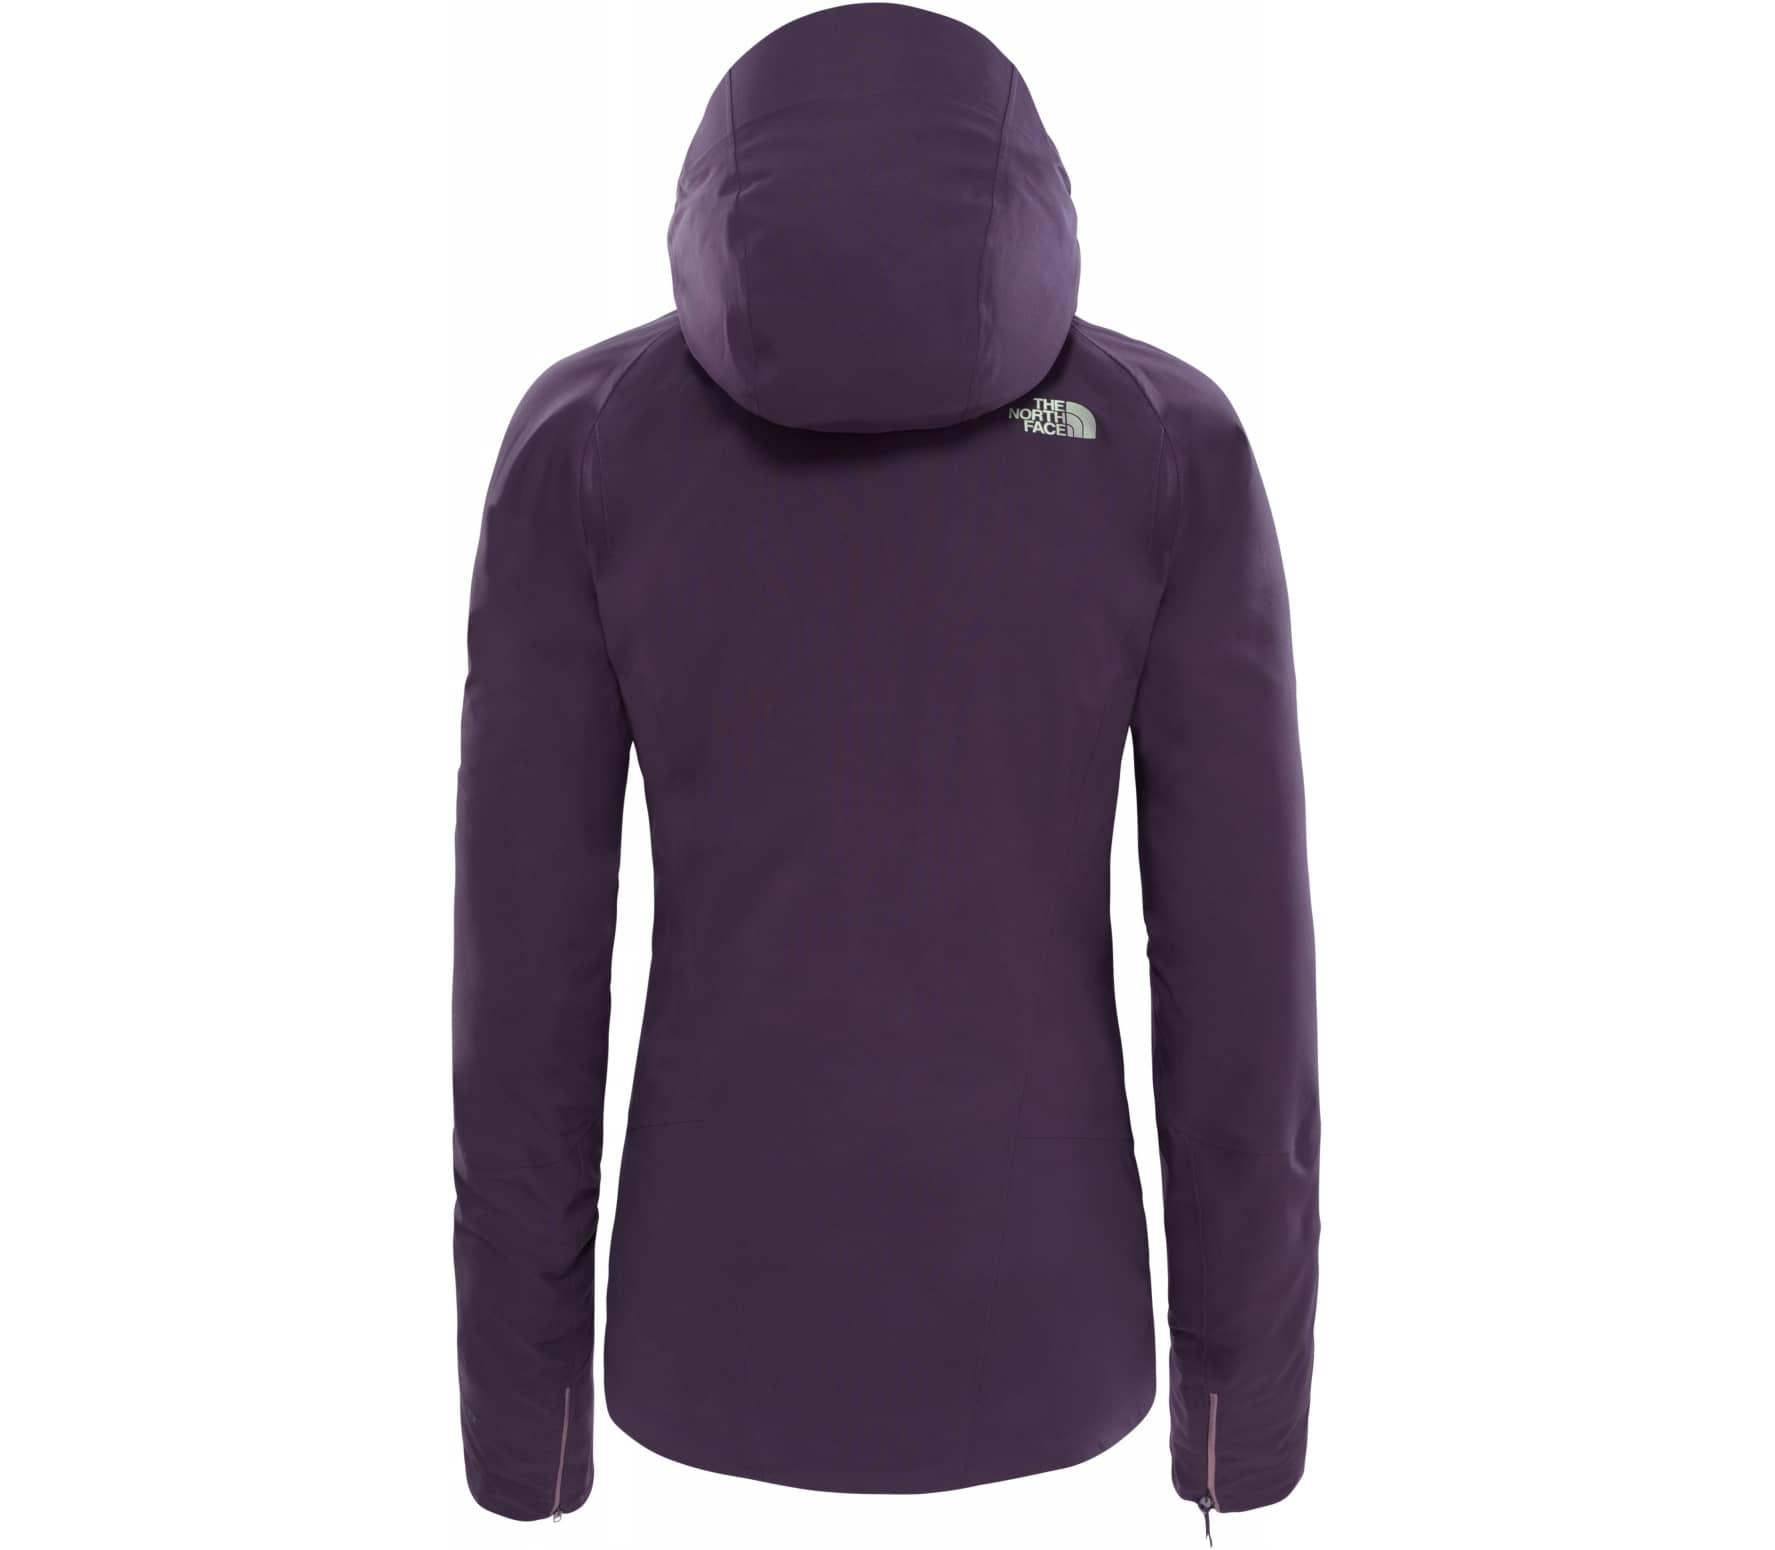 9c0bf71b327f The North Face - Anonym women s skis jacket (purple) - buy it at the ...